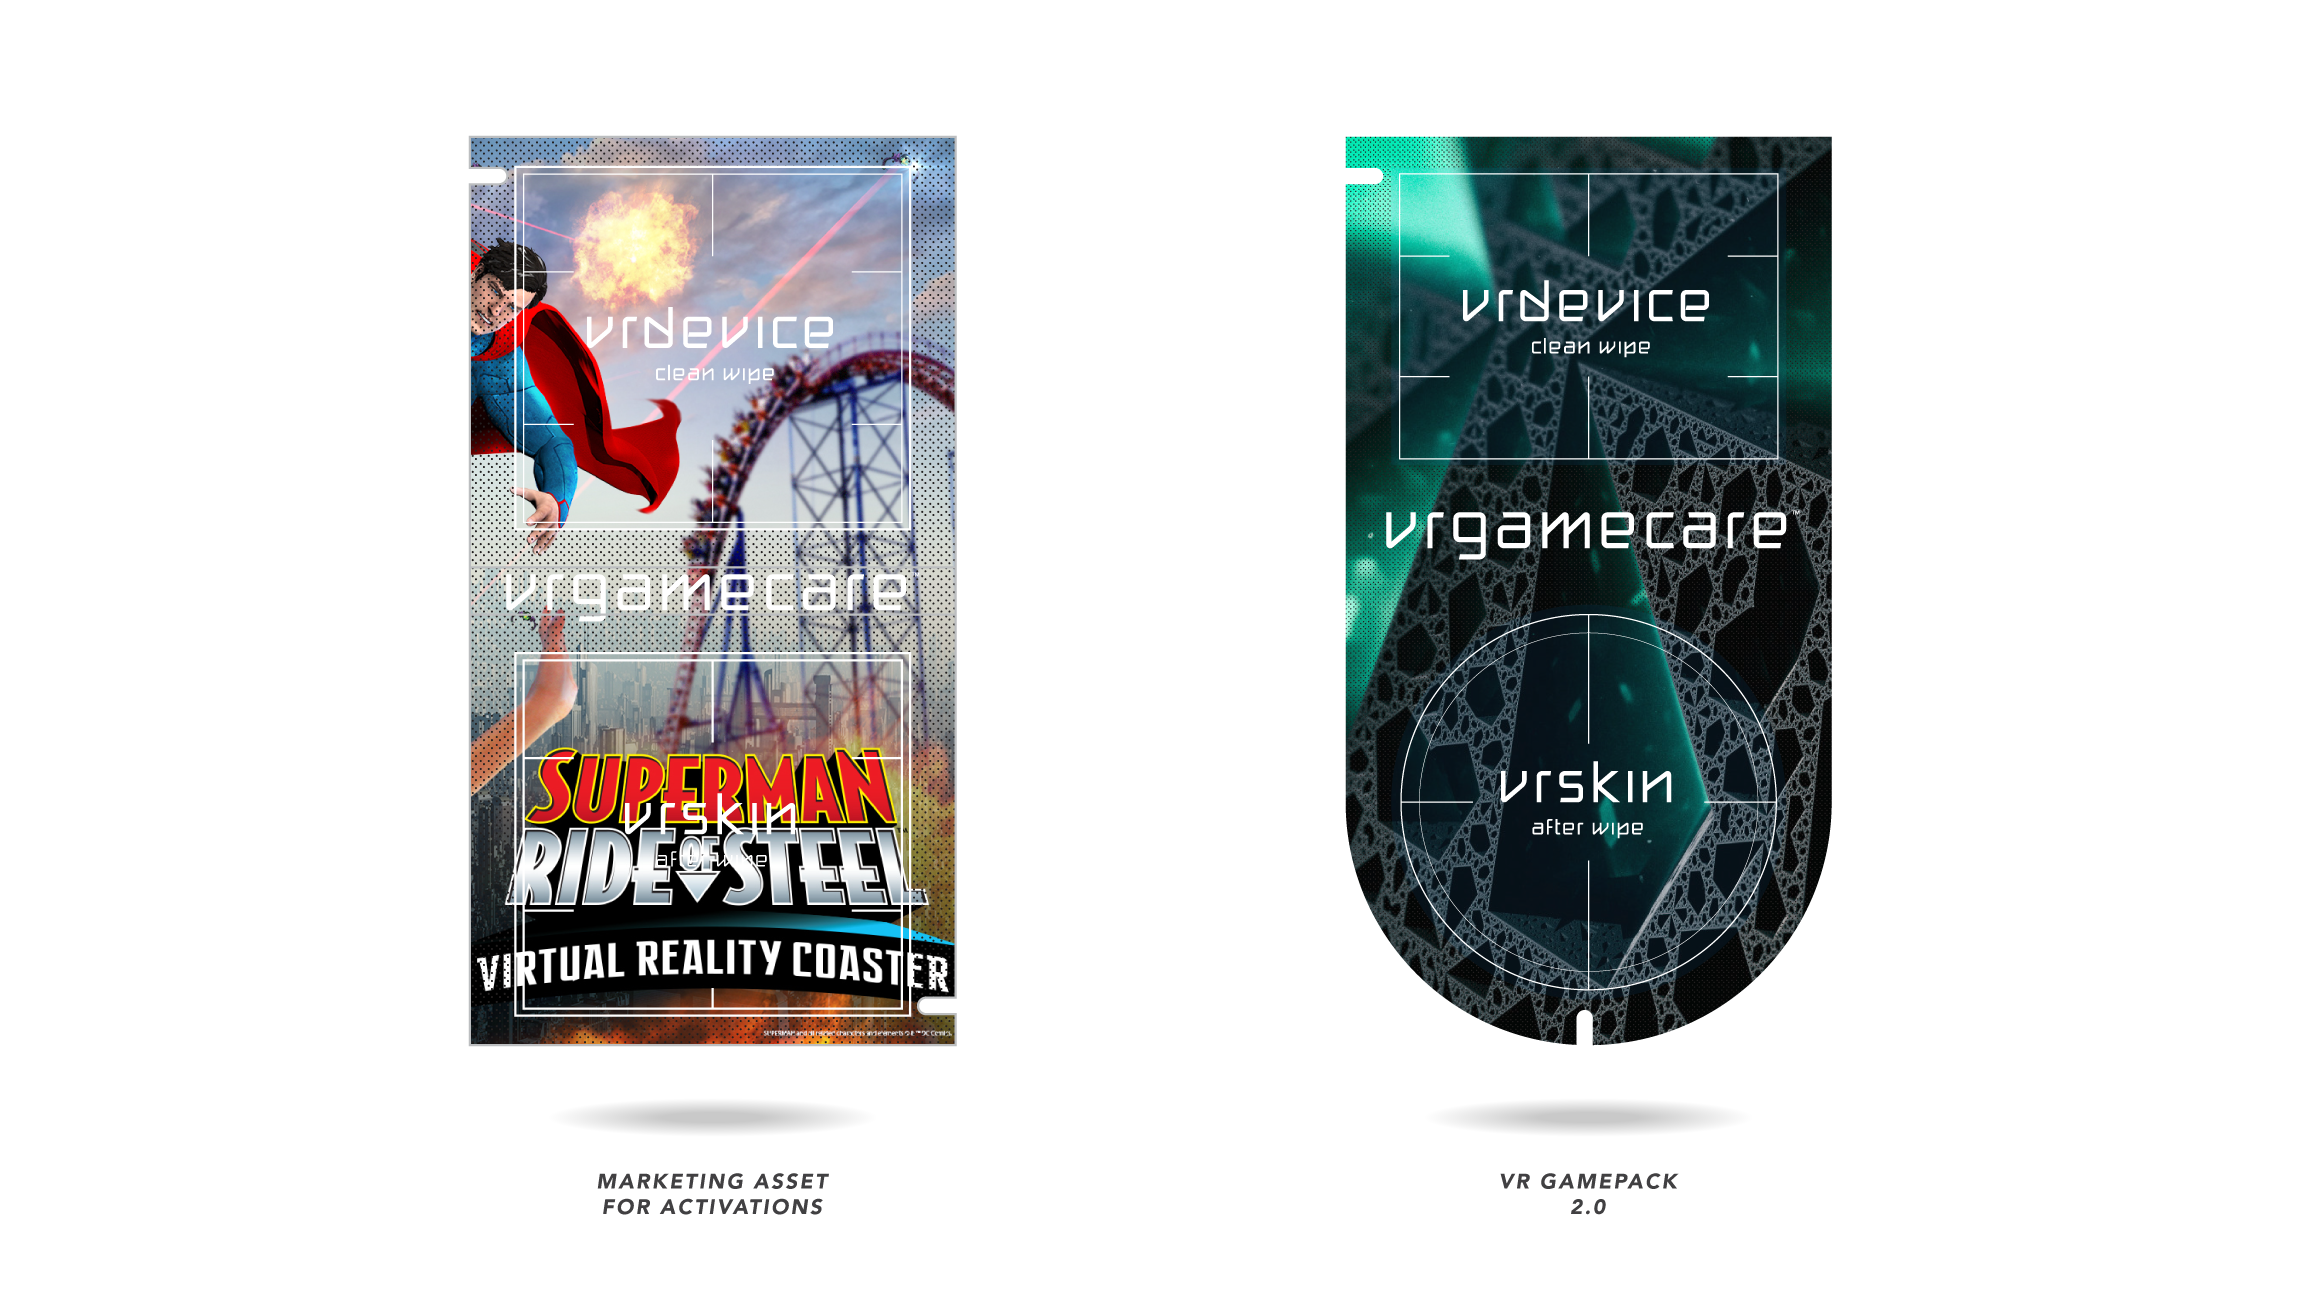 VRGC_PRODUCT.png